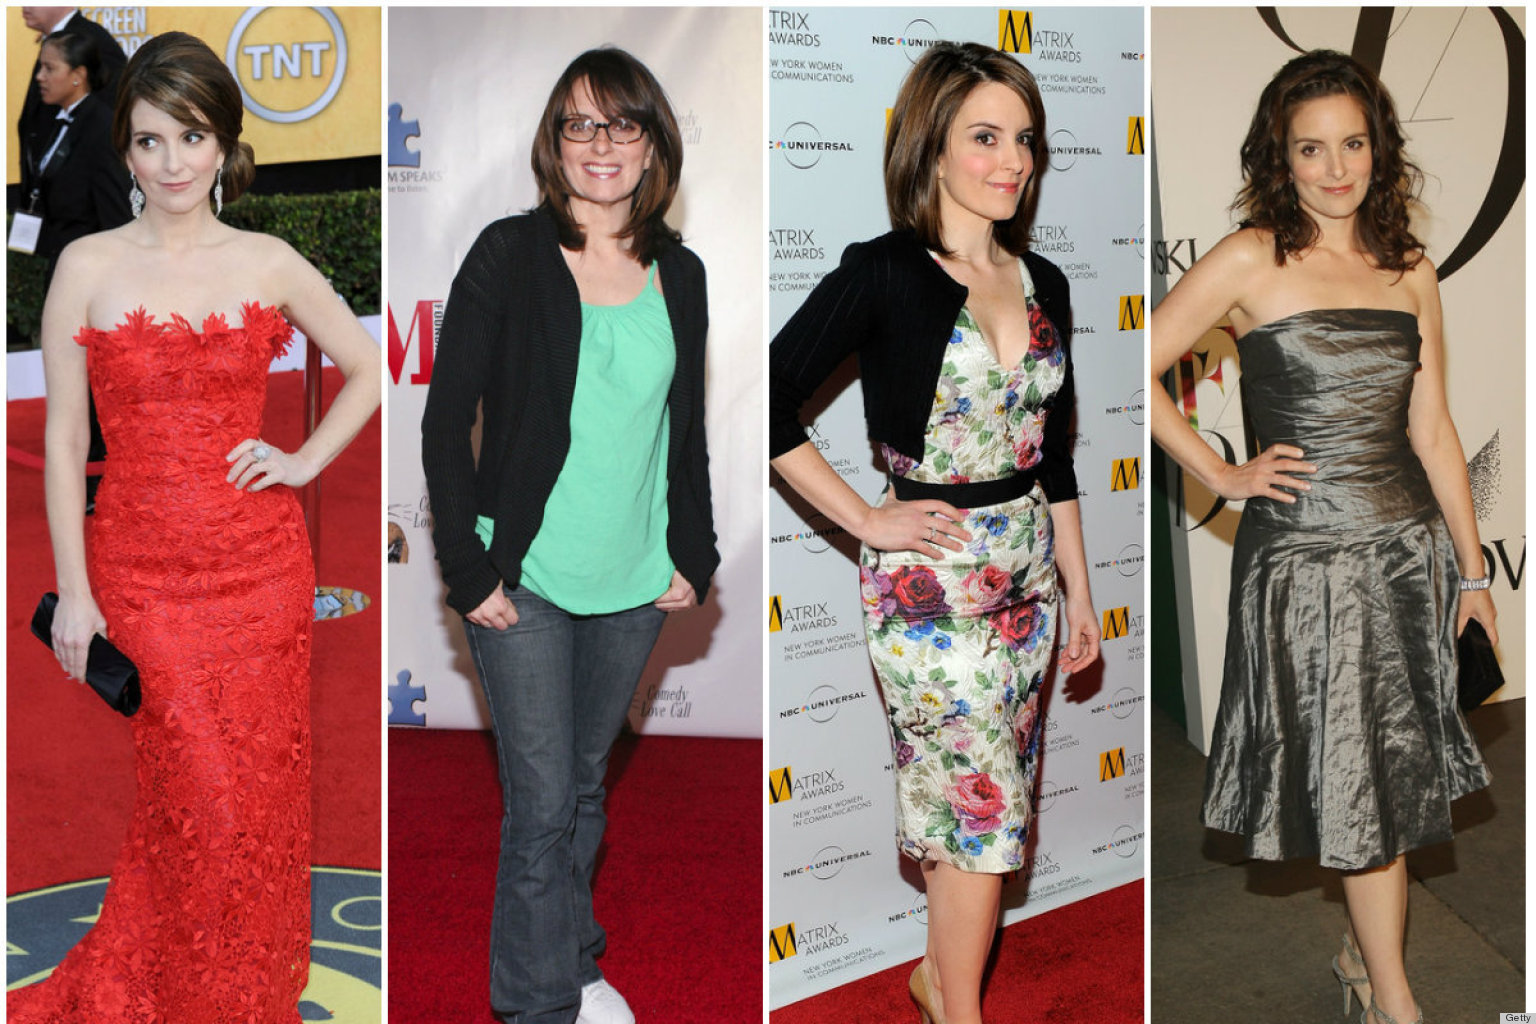 PHOTOS: Tina Fey's Transformation From Geek To Glamour Girl